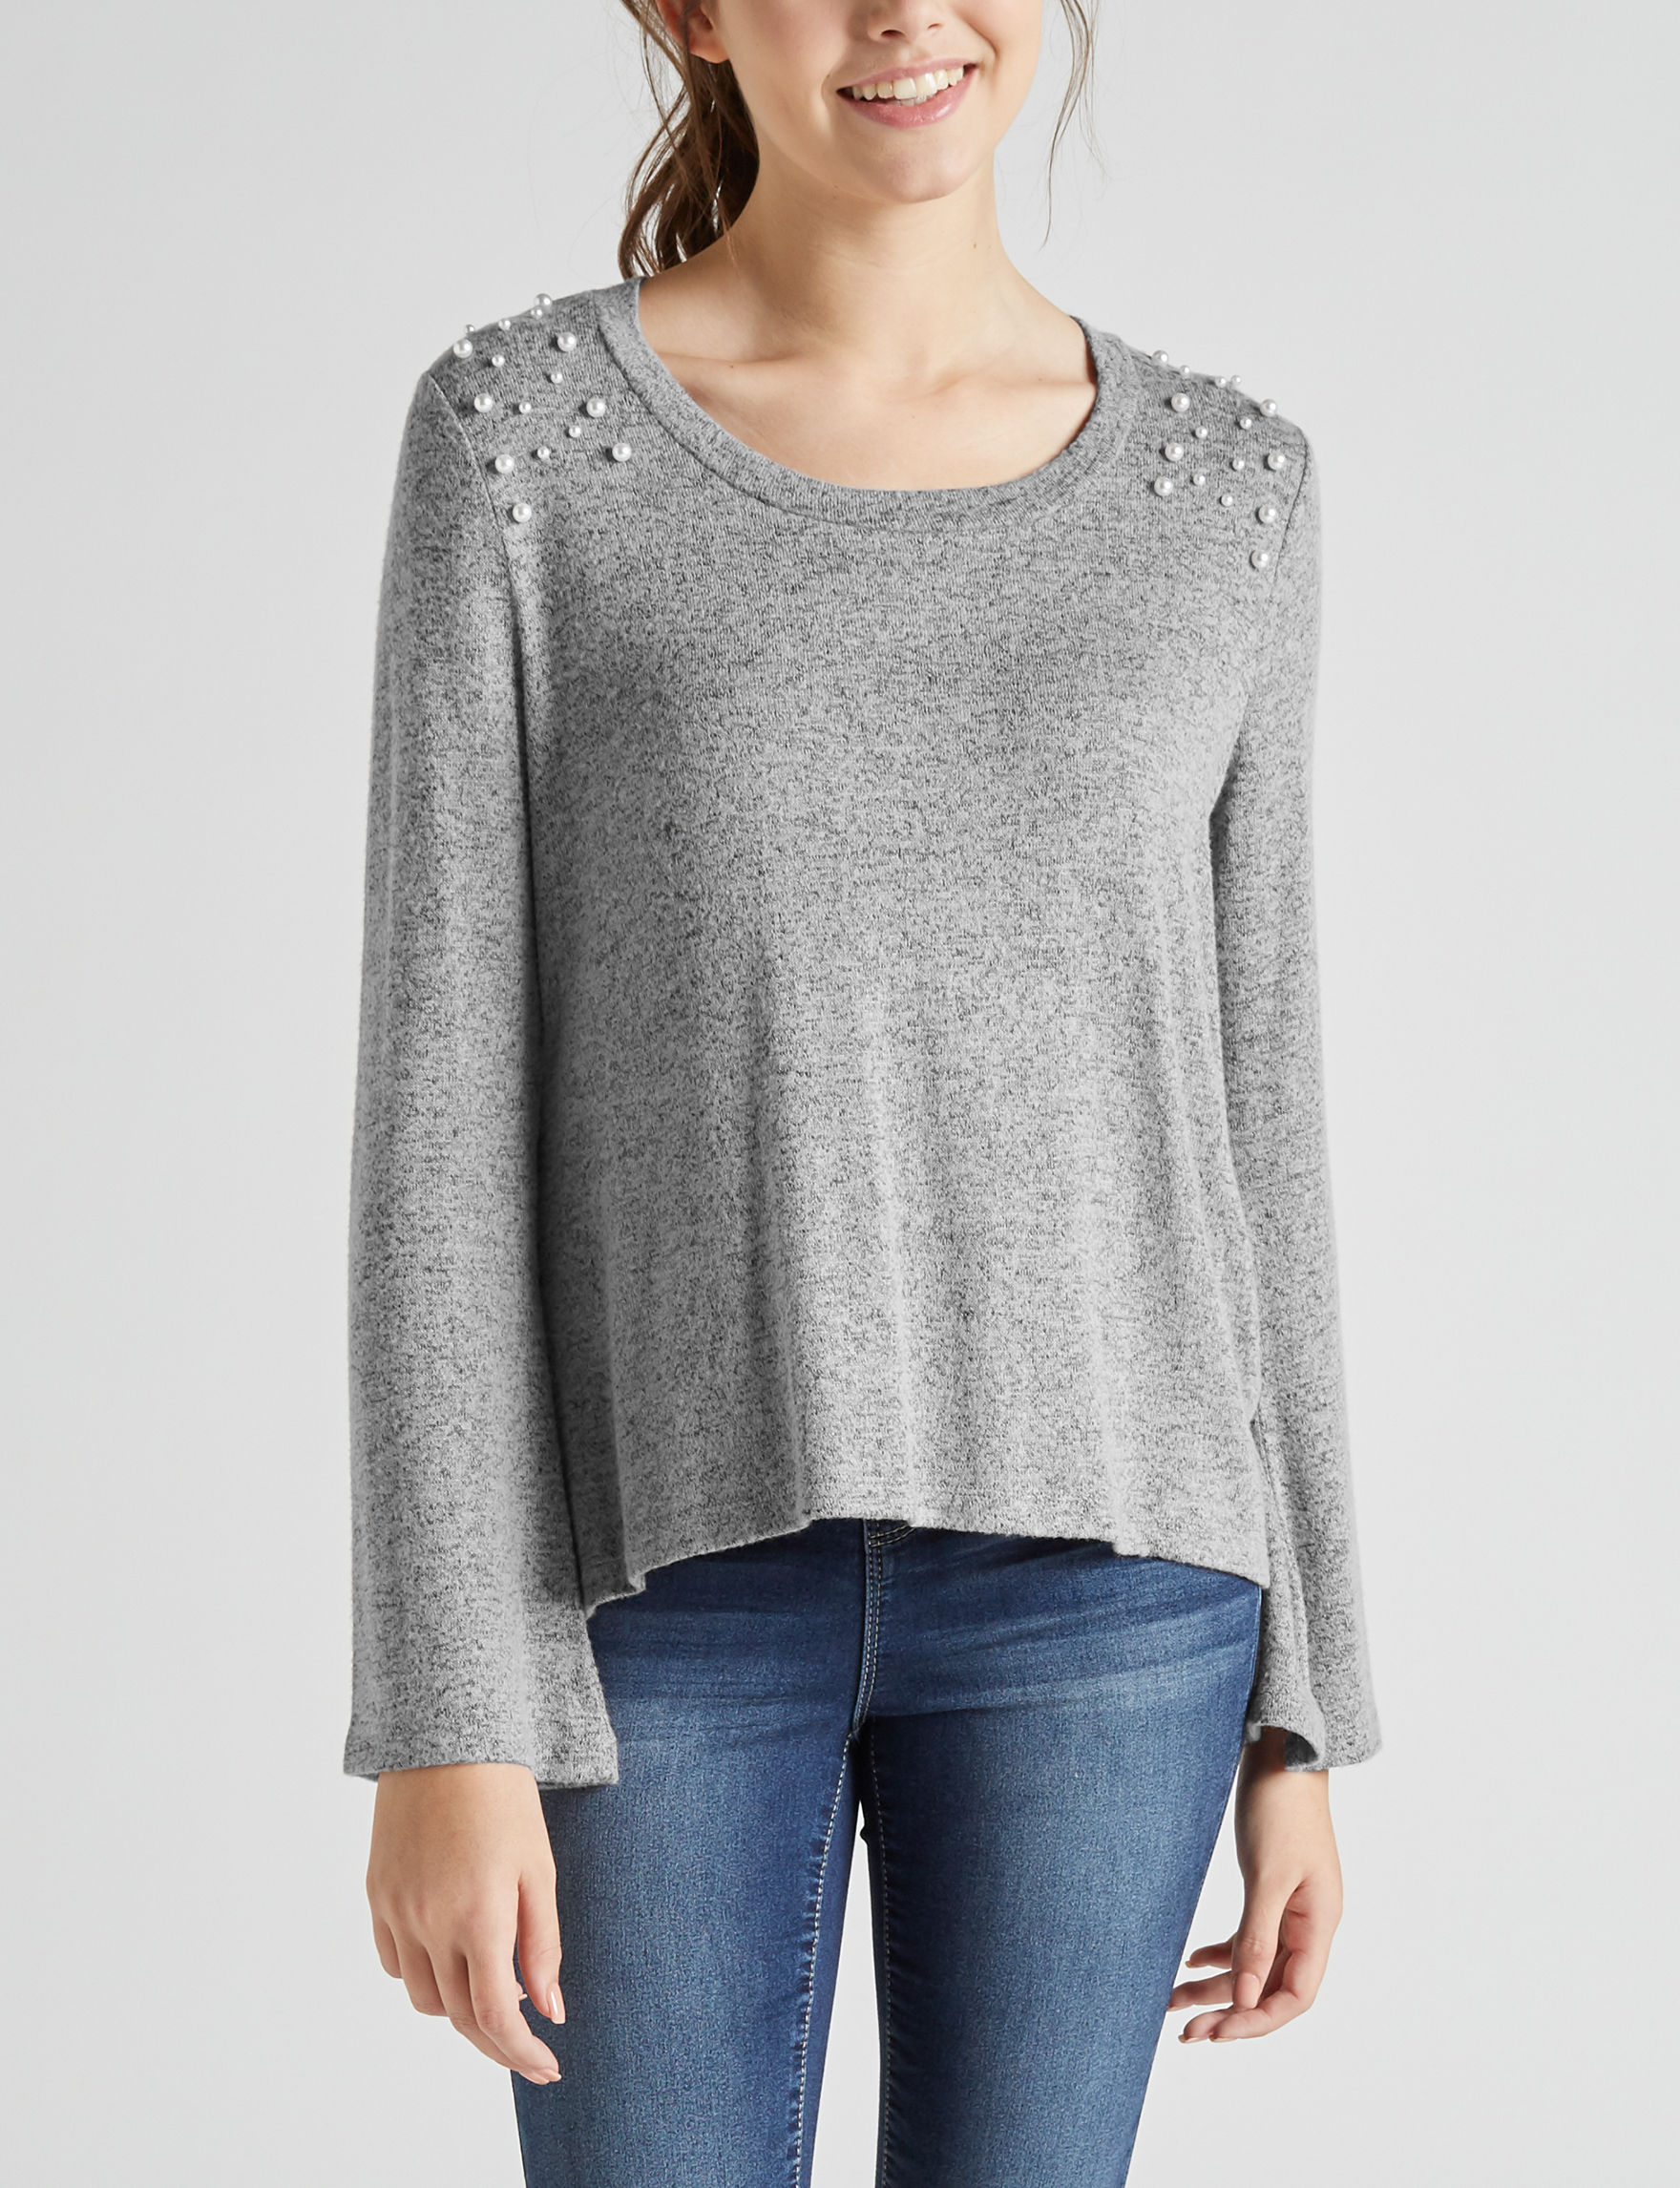 Liberty Love Heather Grey Shirts & Blouses